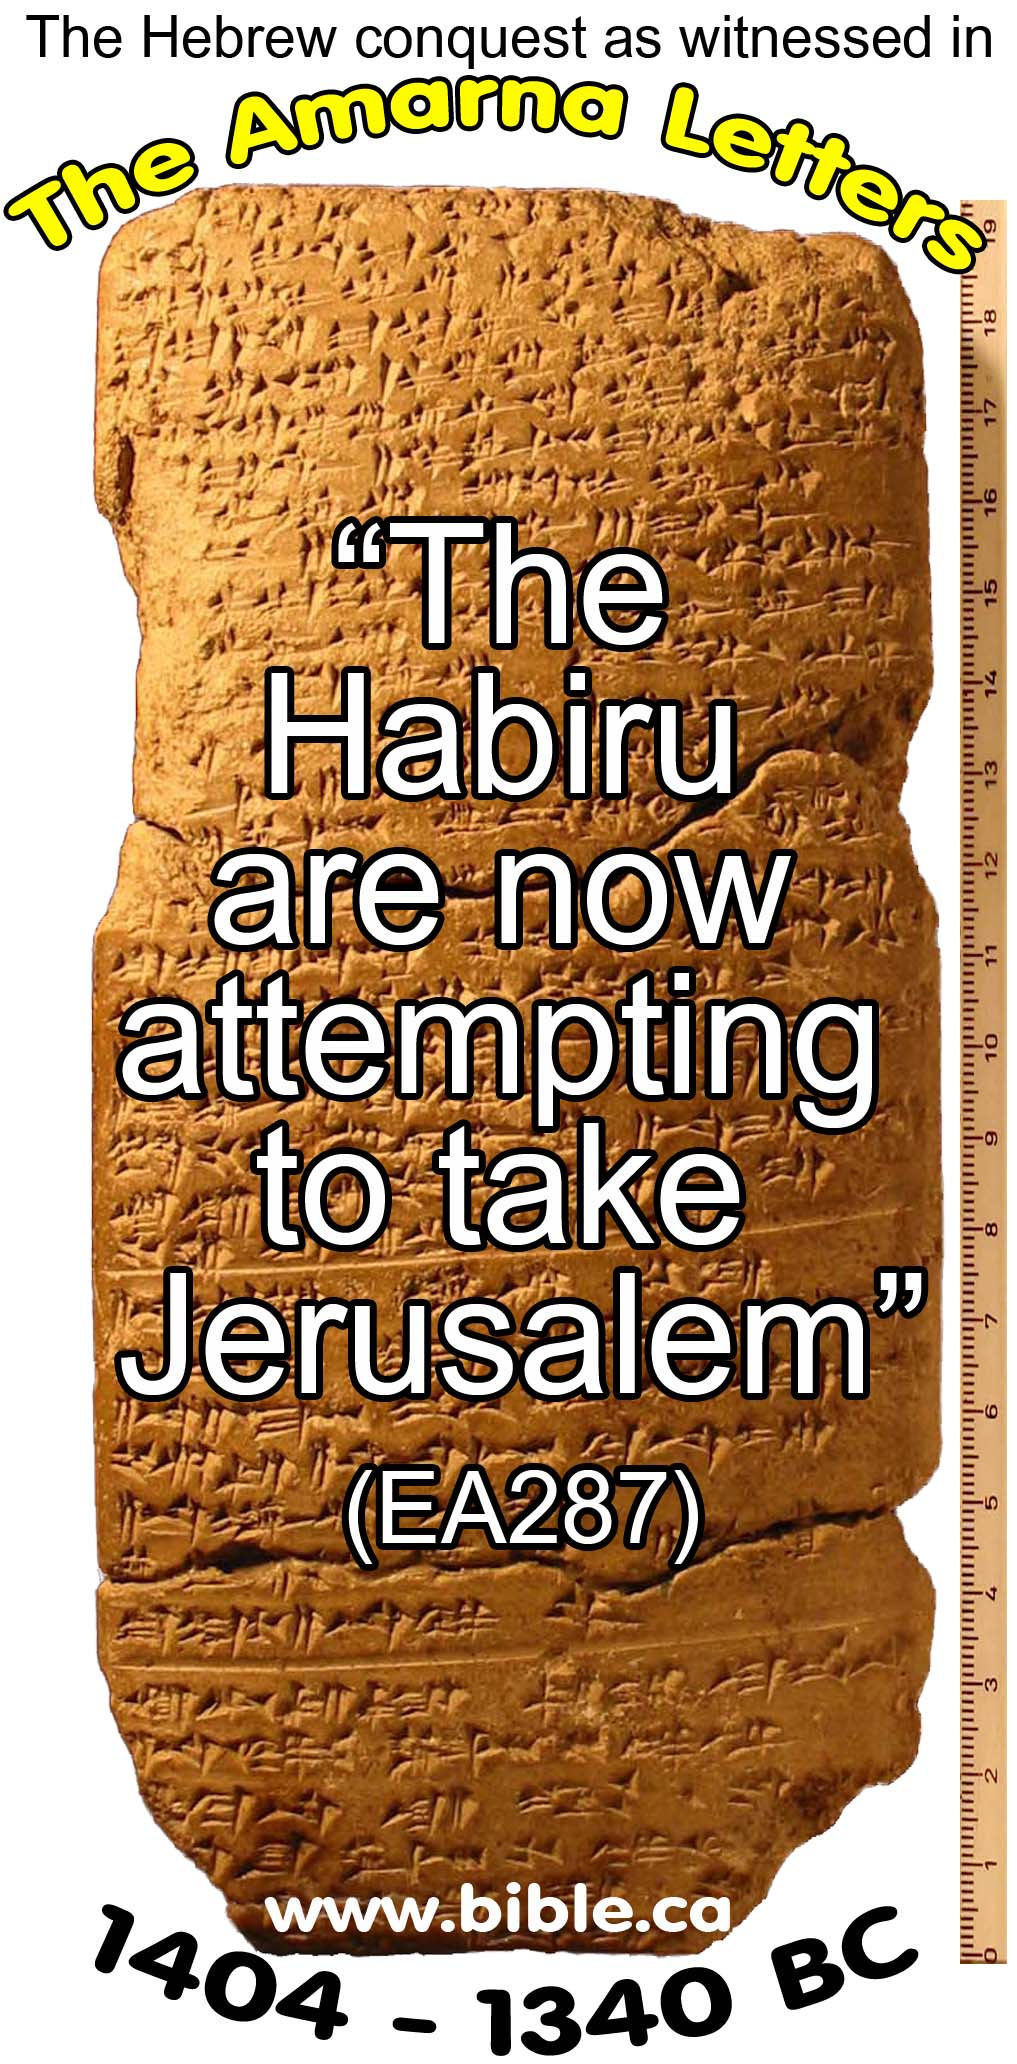 exodus-conquest-habiru-attempting-take-jerusalem